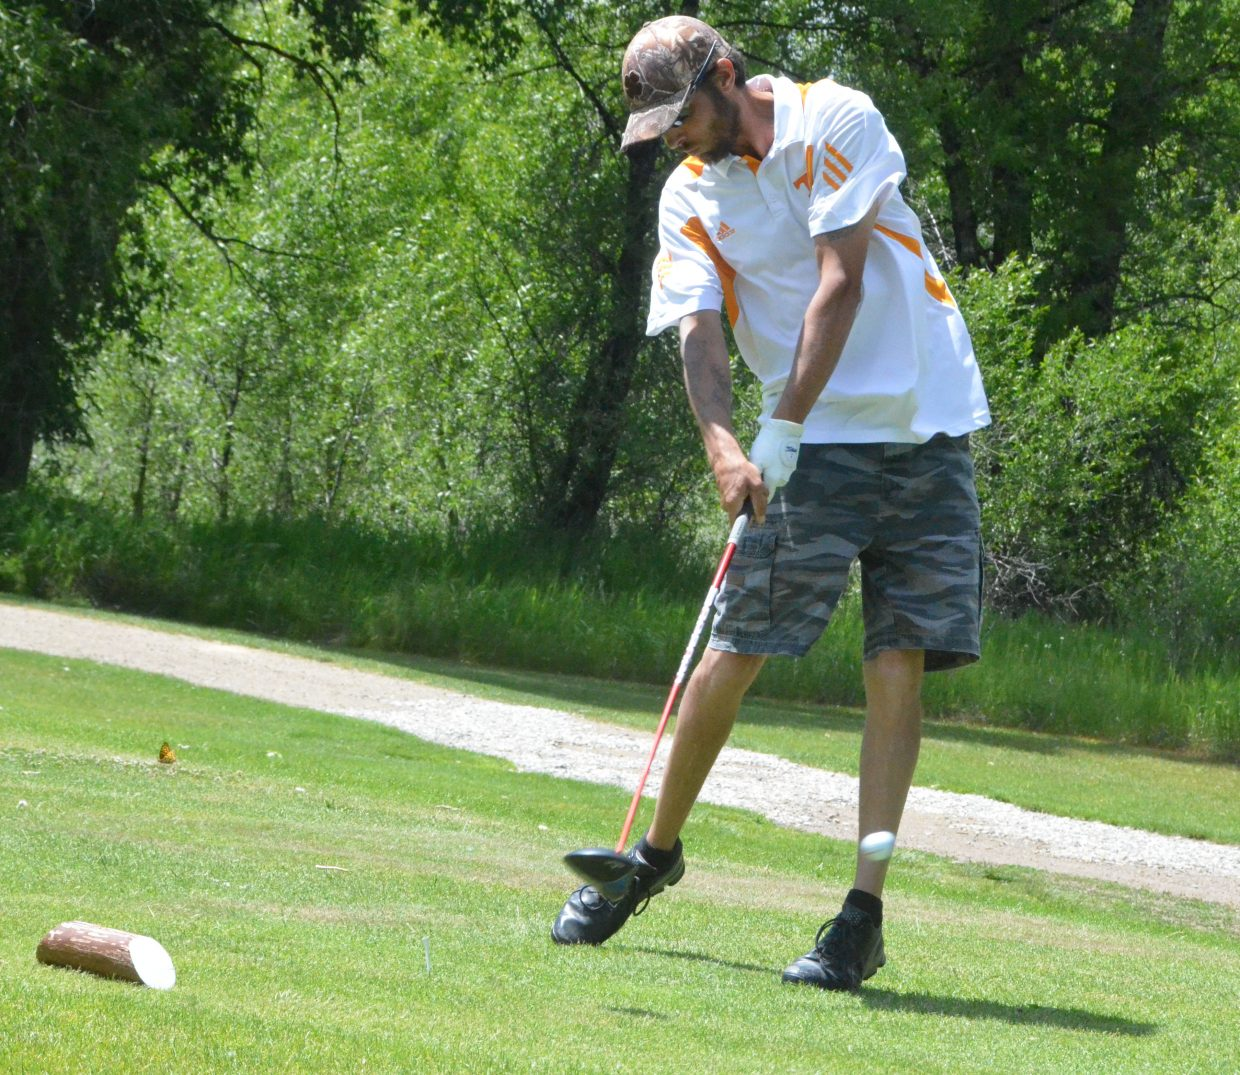 Meeker's Jason Mack connects on a drive from the 17th tee Saturday during the 51st annual Cottonwood Classic at Yampa Valley Golf Course.